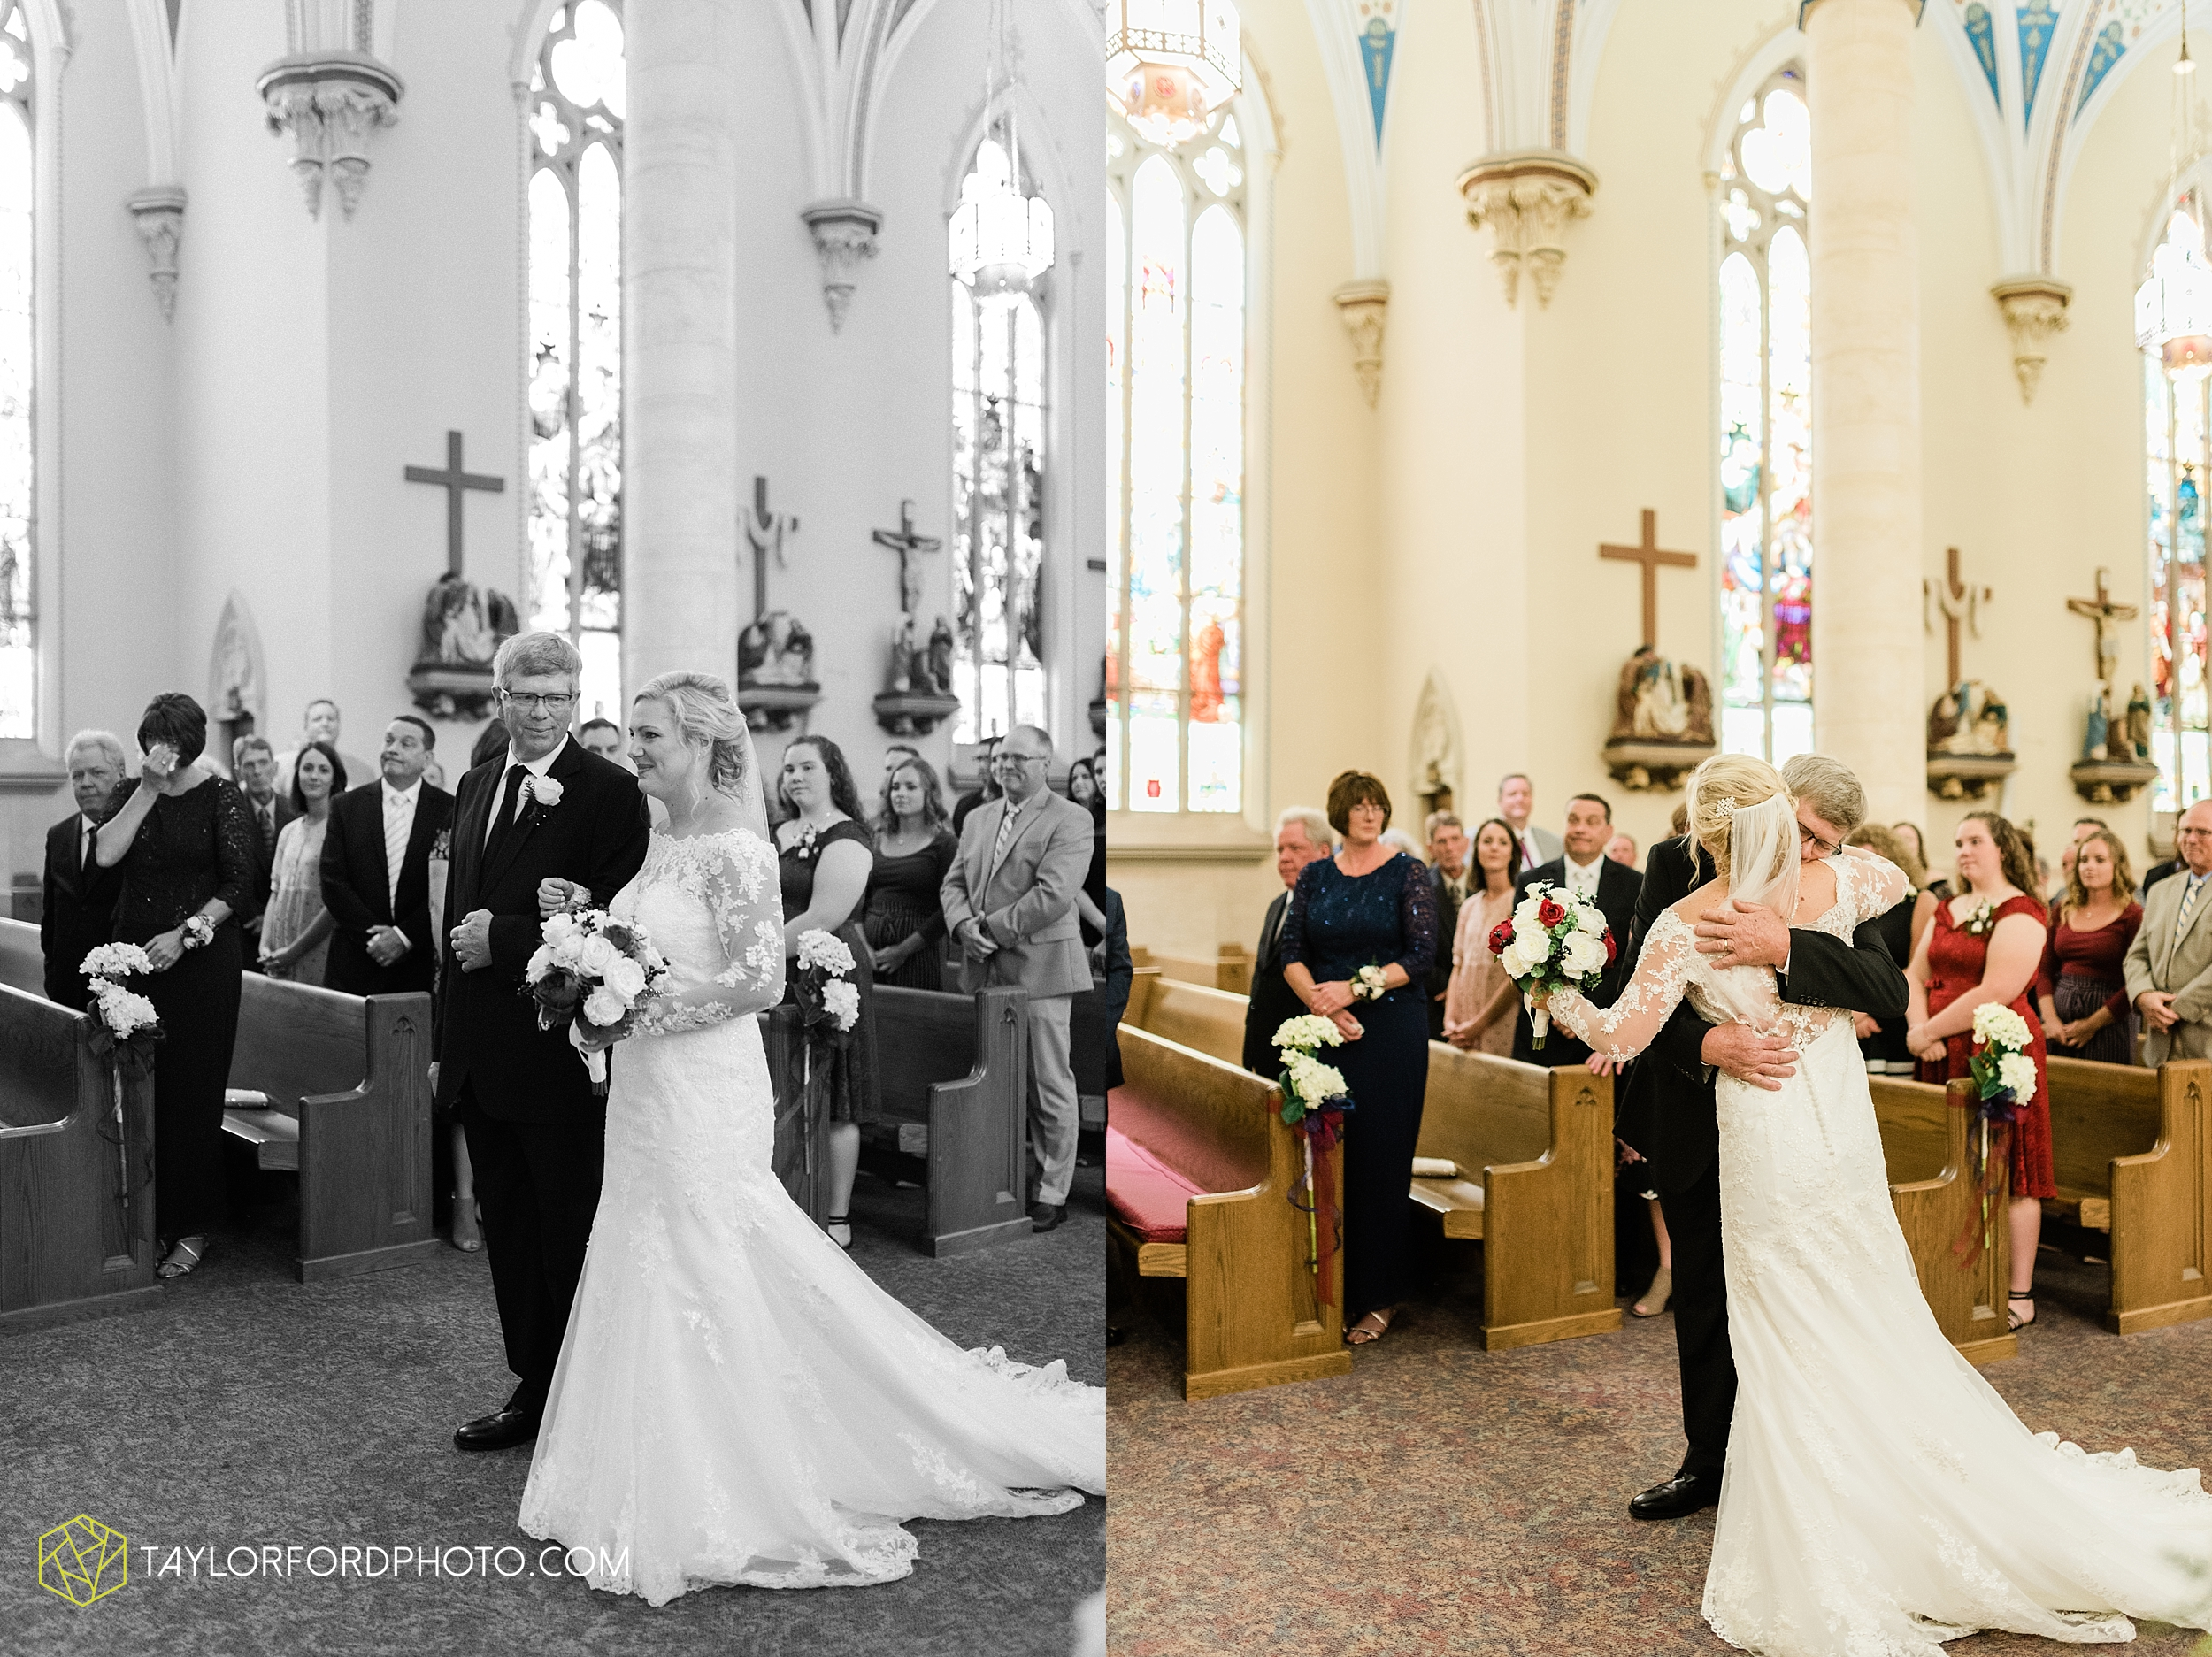 gayle-rayman-mike-steele-ottoville-ohio-wedding-immaculate-conception-parish-center-wedding-sycamore-lake-winery-wannamachers-photographer-taylor-ford-photography_0392.jpg